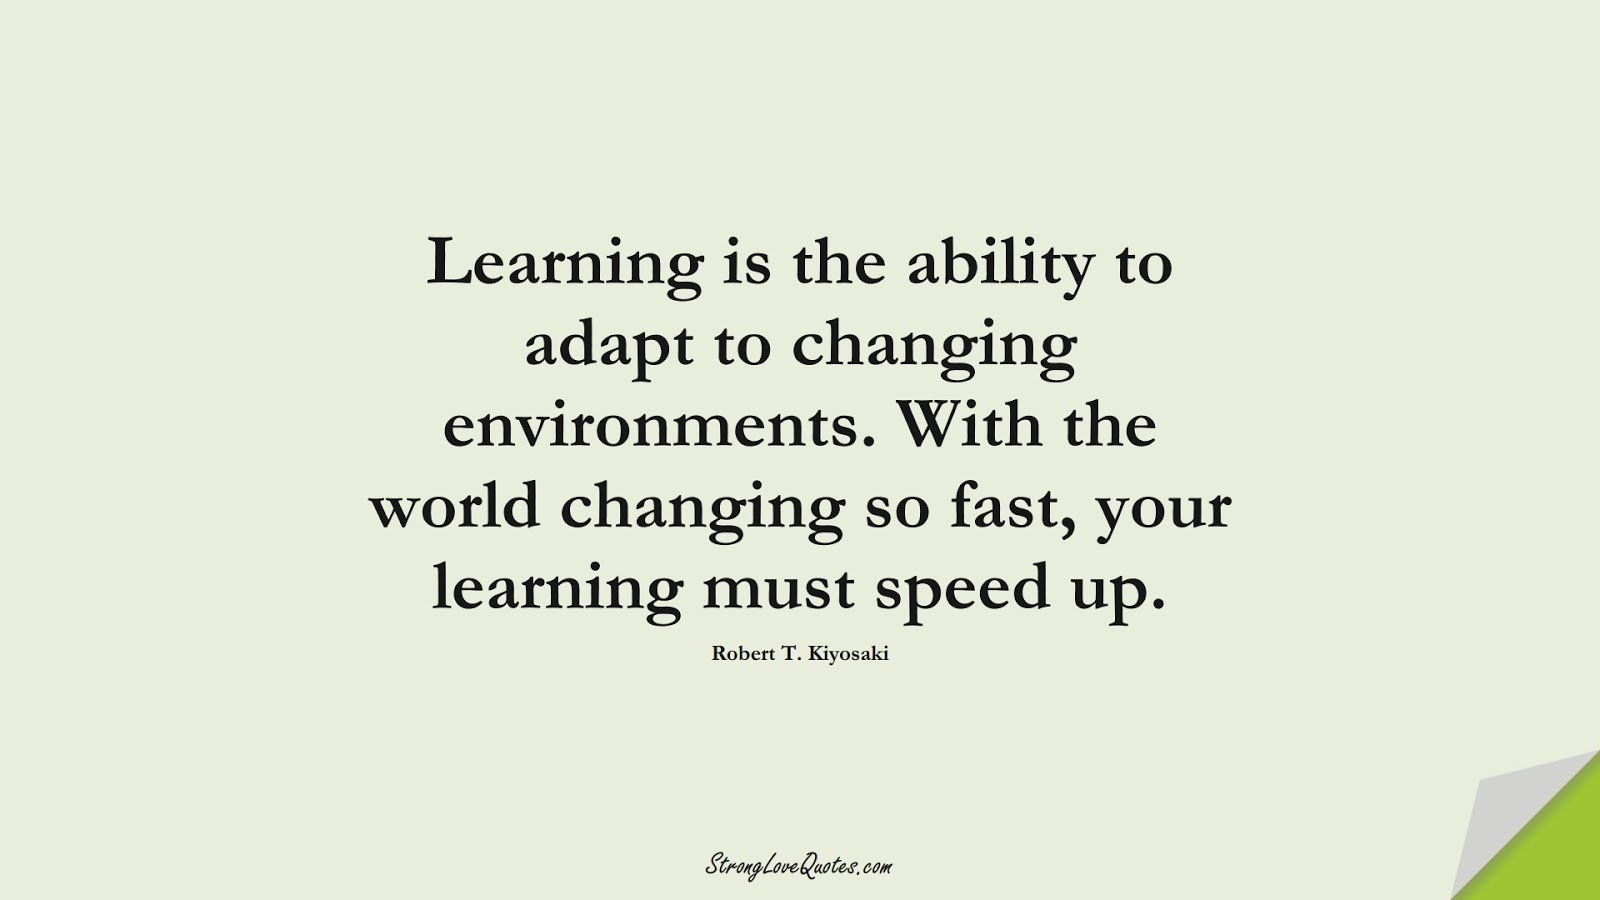 Learning is the ability to adapt to changing environments. With the world changing so fast, your learning must speed up. (Robert T. Kiyosaki);  #LearningQuotes